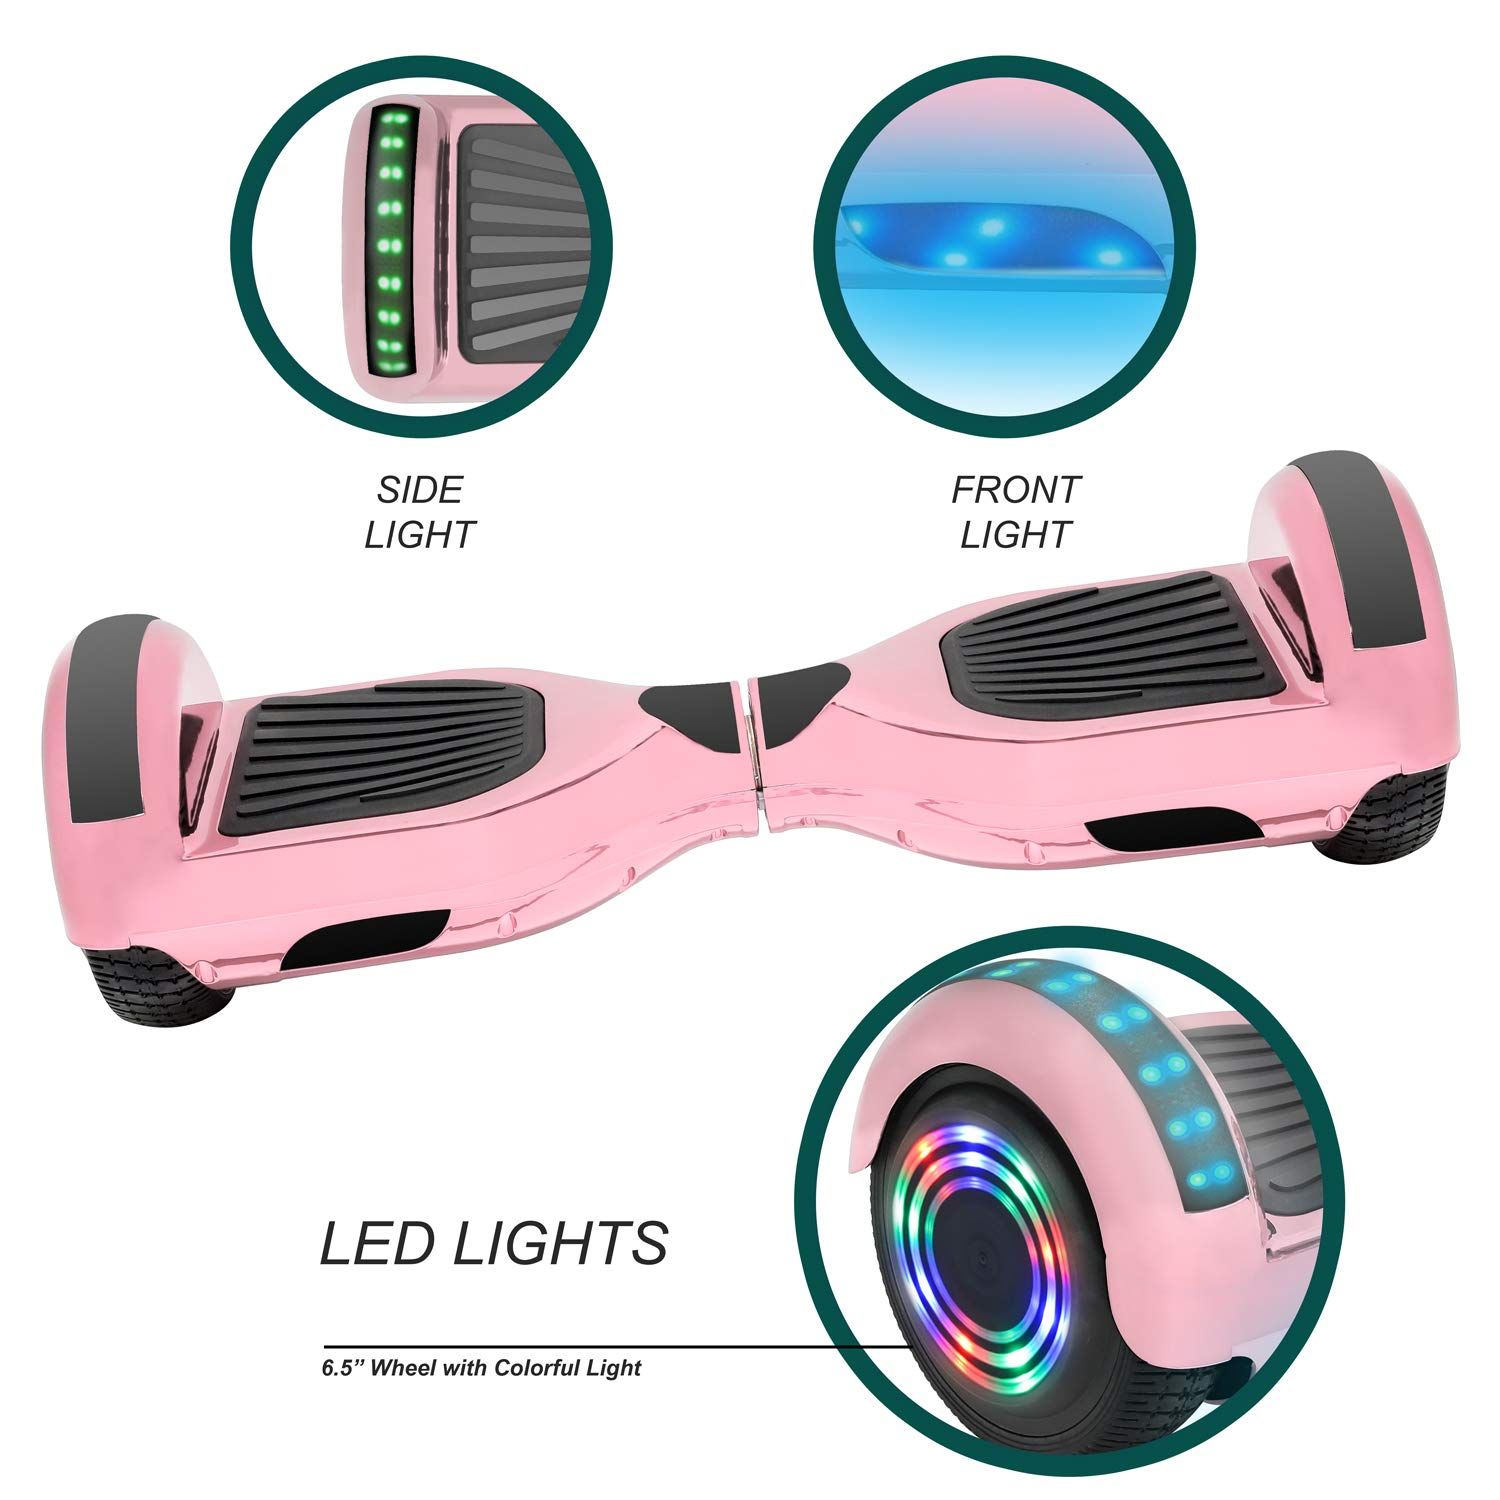 NHT 6.5'' Hoverboard Electric Self Balancing Scooter Sidelights - UL2272 Certified Black, Blue, Pink, Red, White or Chrome Style (Chrome Rose Gold) by NHT (Image #2)